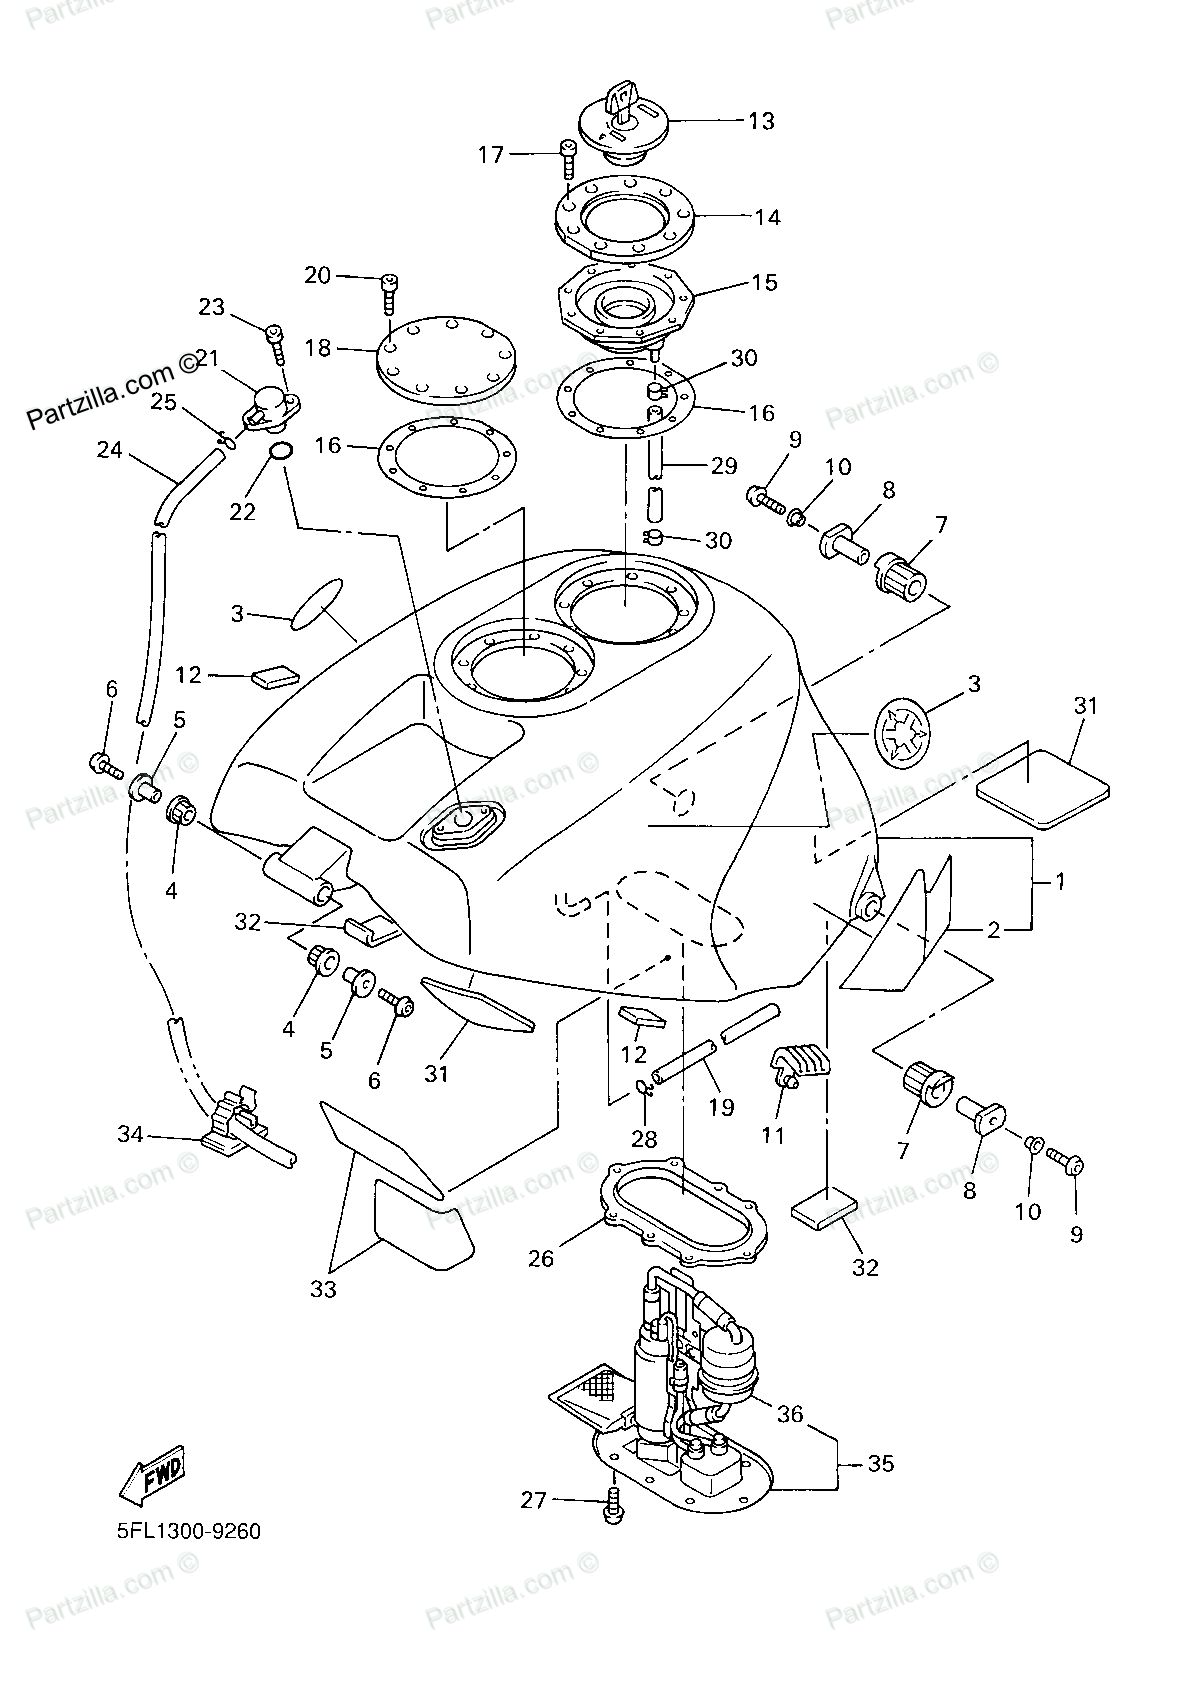 Diagram of Yamaha Motorcycle Parts 1999 YZFR7  YZFR7L